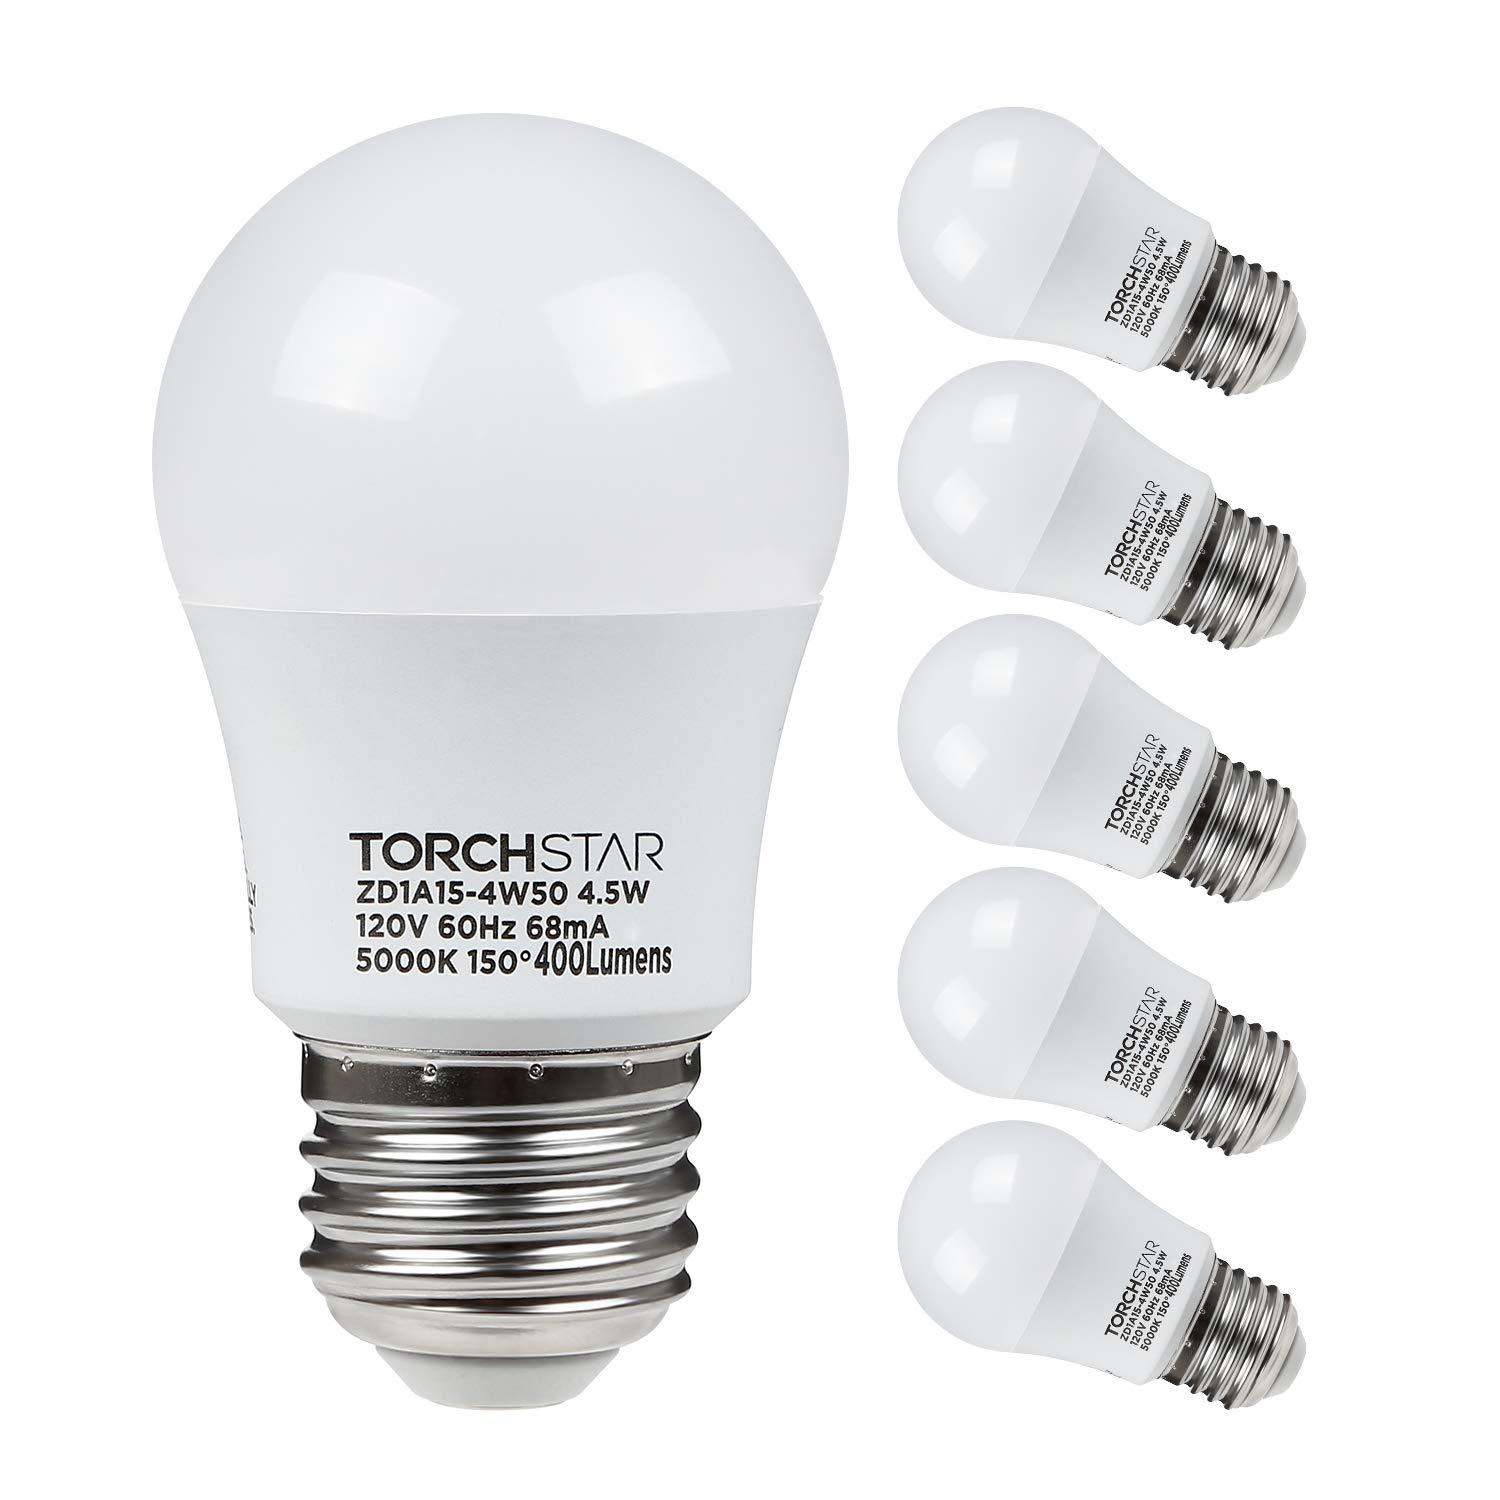 TORCHSTAR 4.5W A15 LED Light Bulb, 40W Equivalent Light Bulb, UL-Listed, E26/E27 Medium Base, 400lm, 5000K Daylight, Omni-Directional LED Light Bulb, Pack of 6